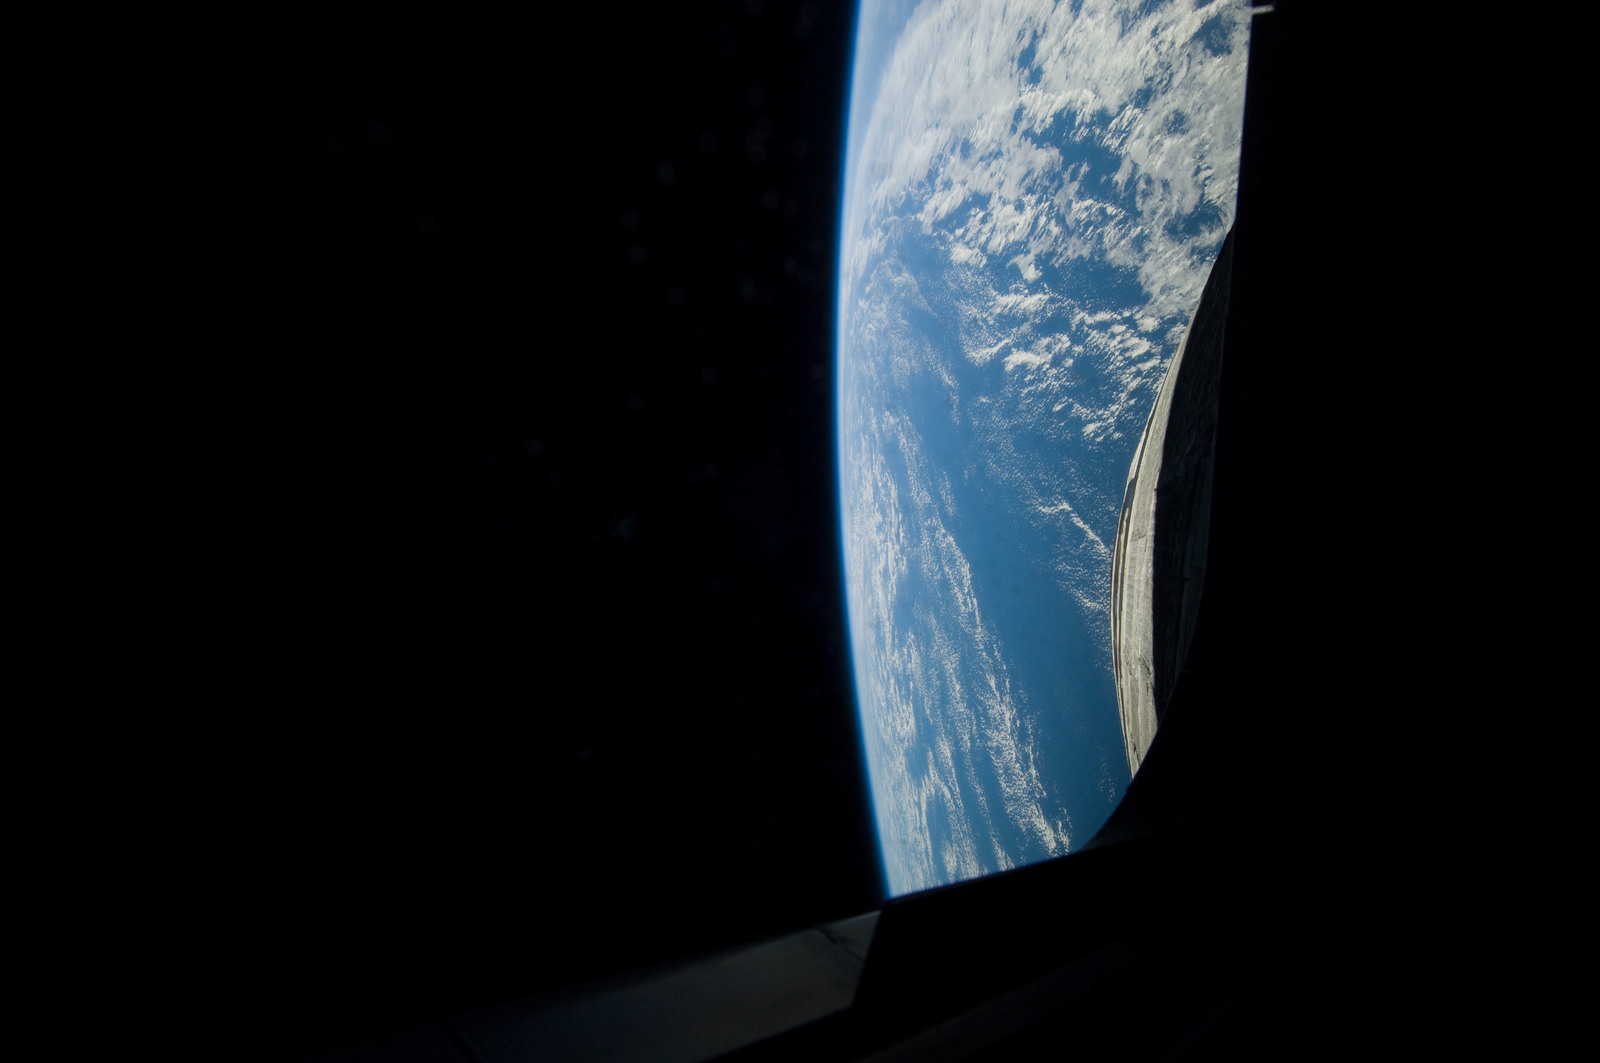 s133E006959 - STS-133 - Earth Observation taken by the STS-133 crew